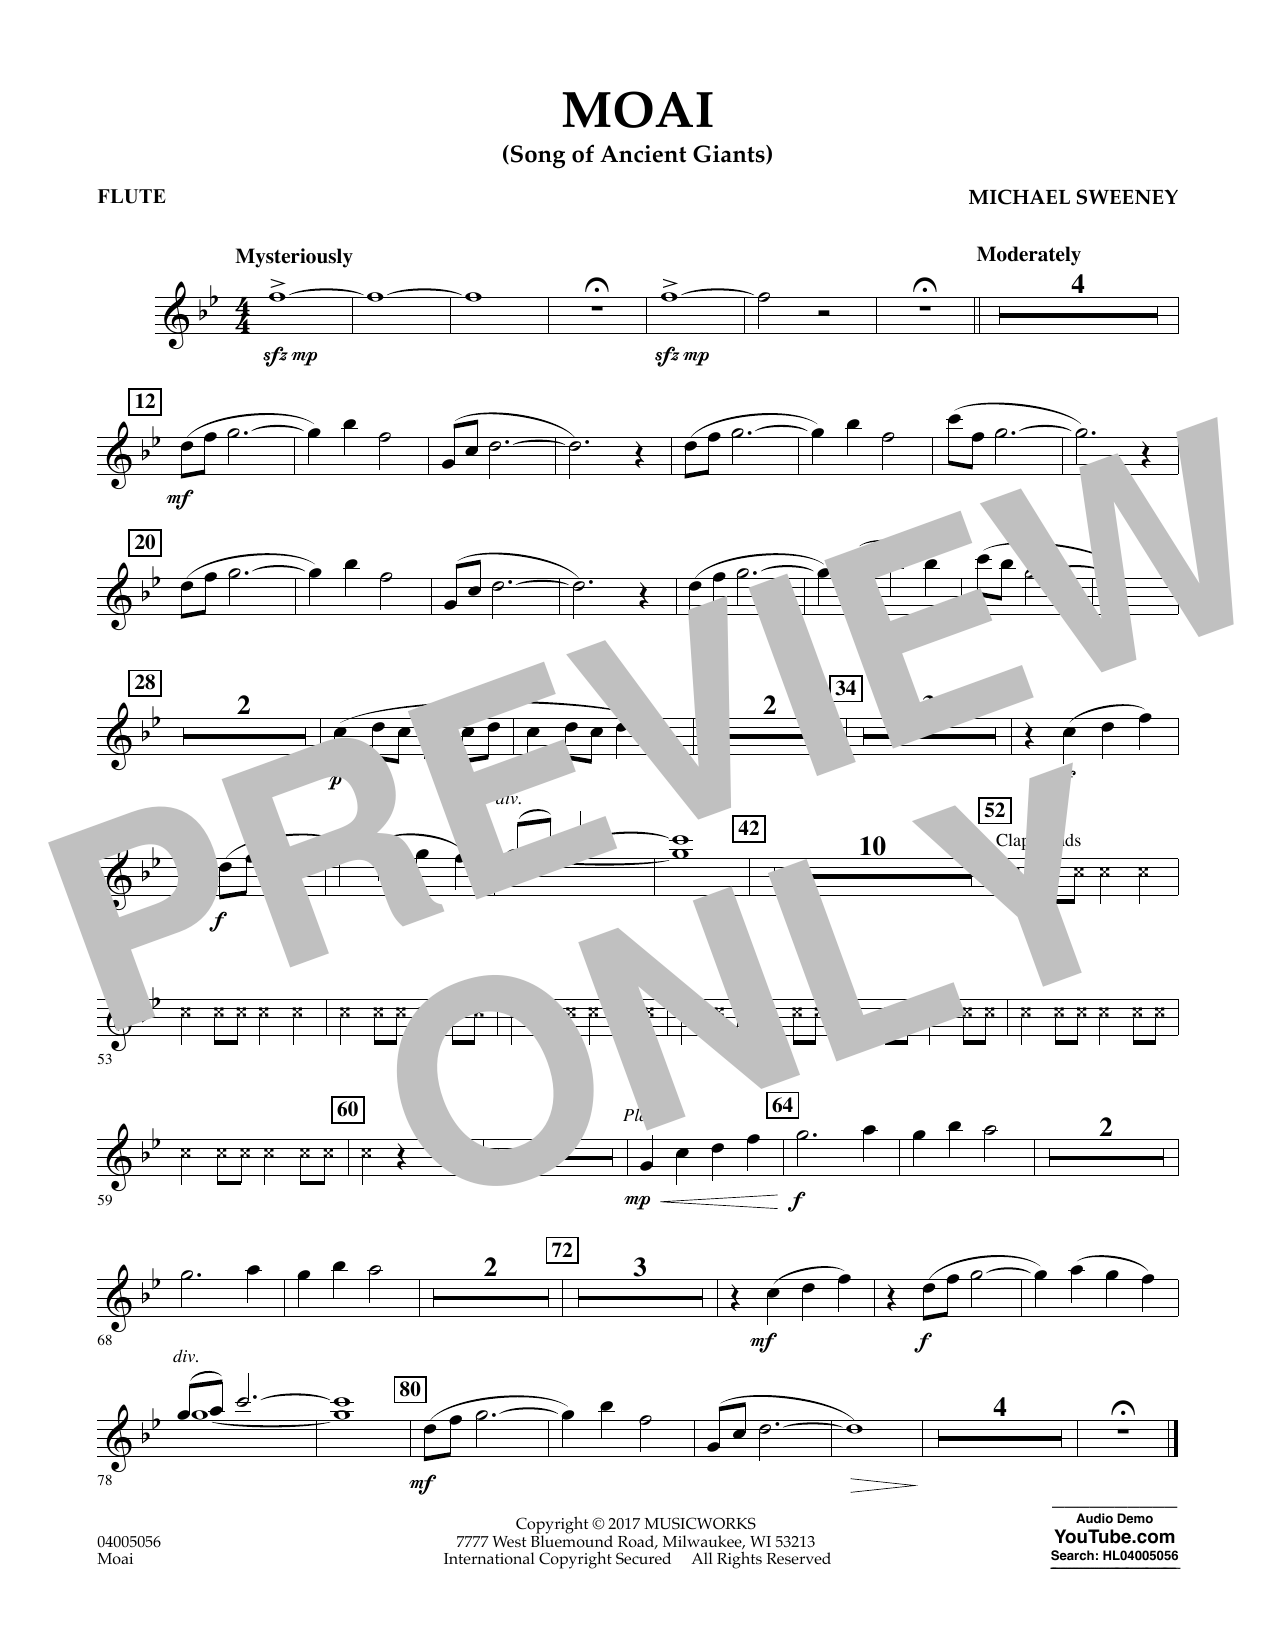 Michael Sweeney Moai (Songs of Ancient Giants) - Flute sheet music notes and chords. Download Printable PDF.